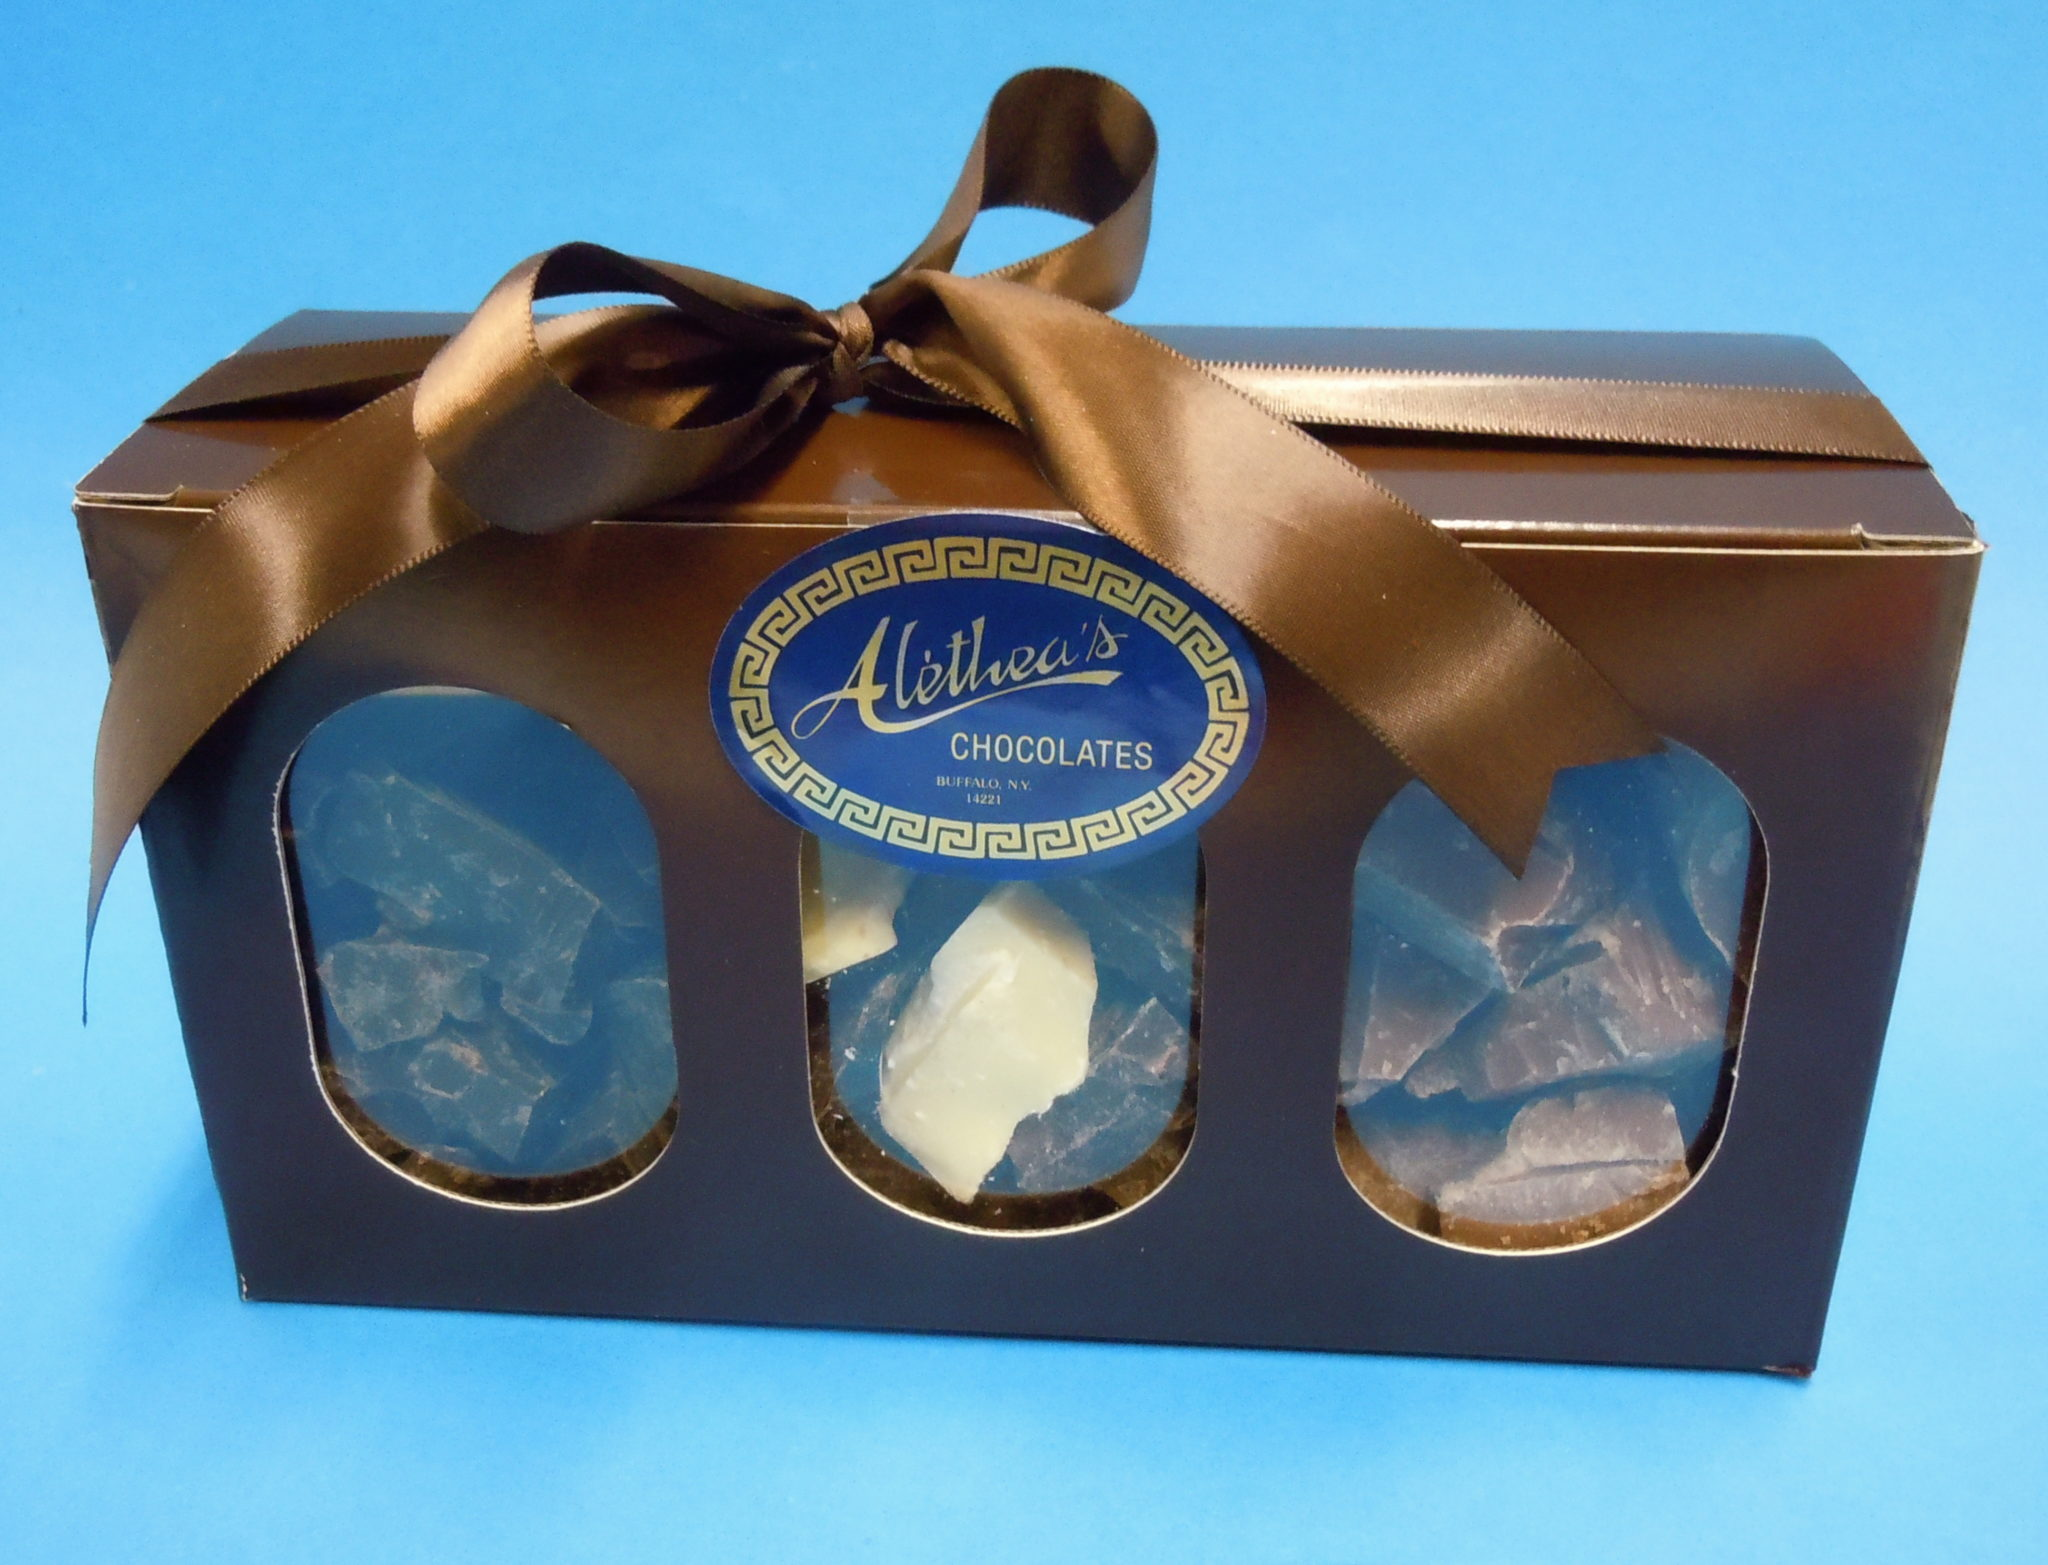 Lovely gift Box of pure gourmet chocolate varieties.